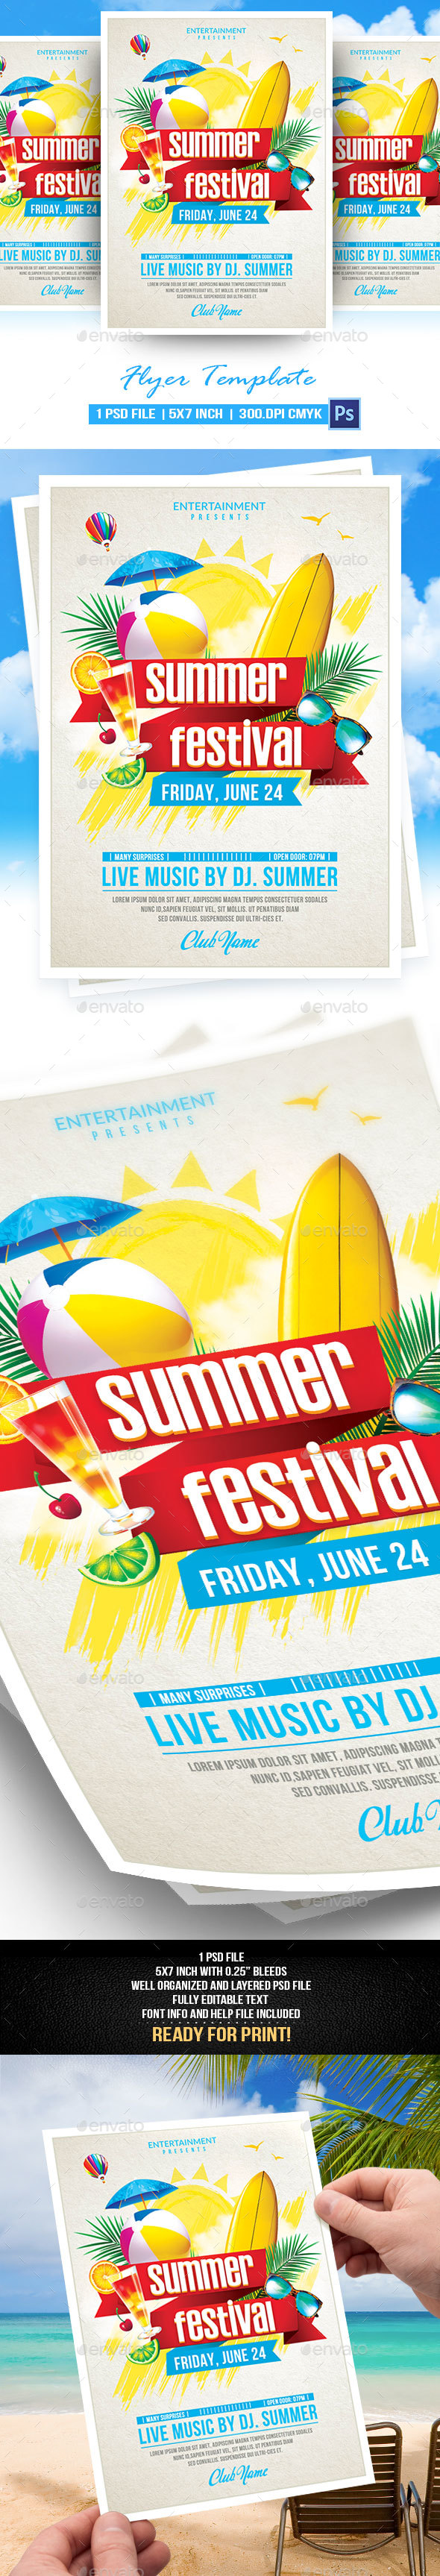 Summer Festival Flyer Template - Events Flyers